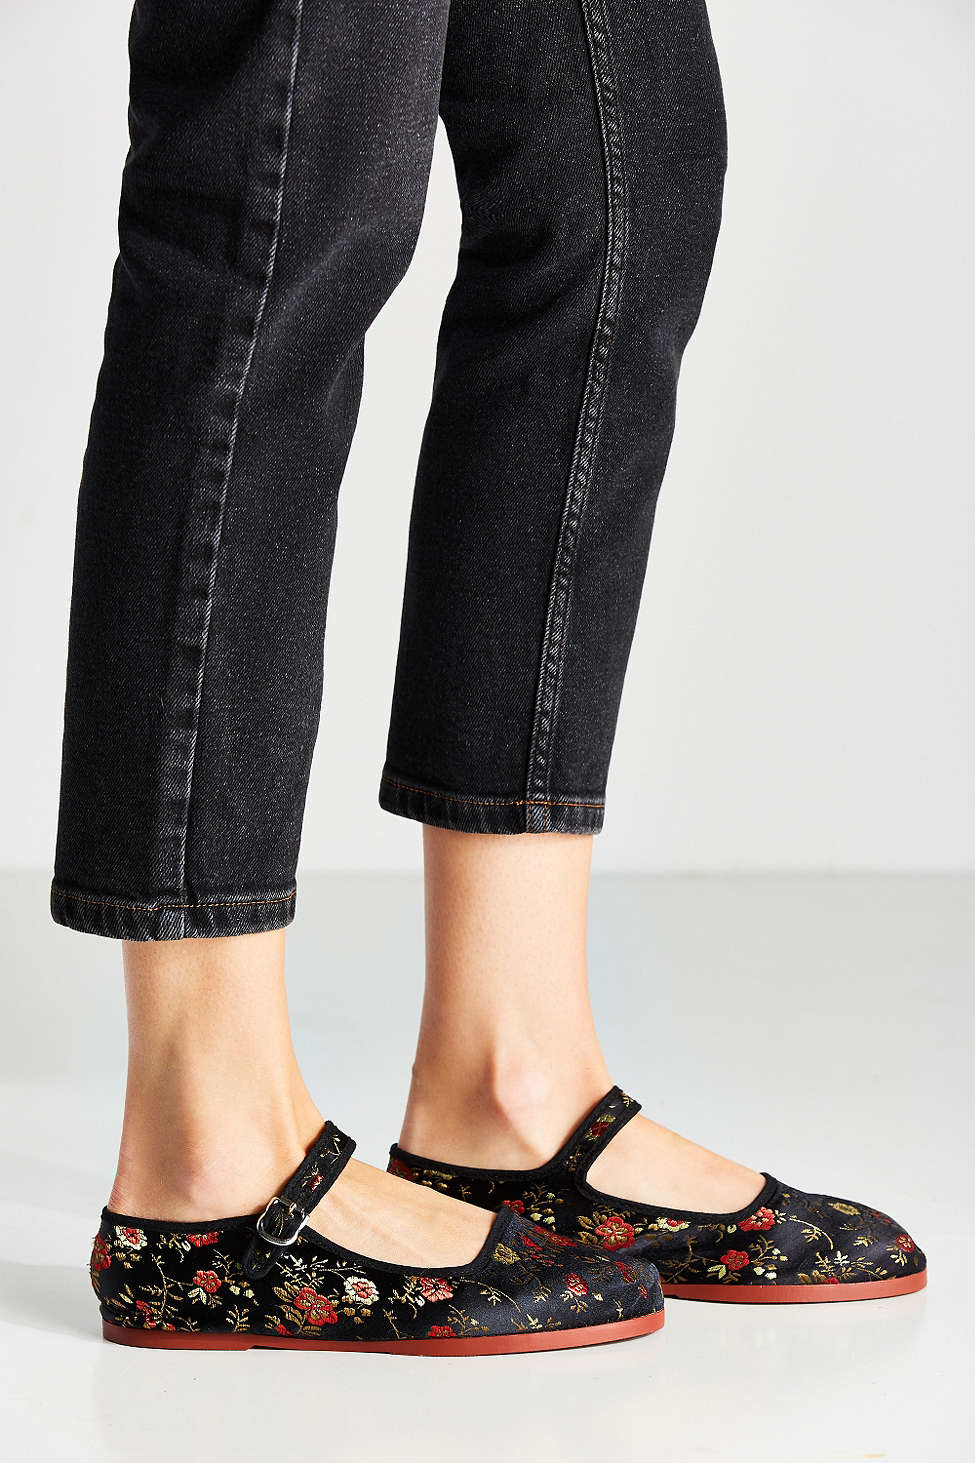 Urban Outfitters Satin Patterned Mary Jane Flat In Black Lyst